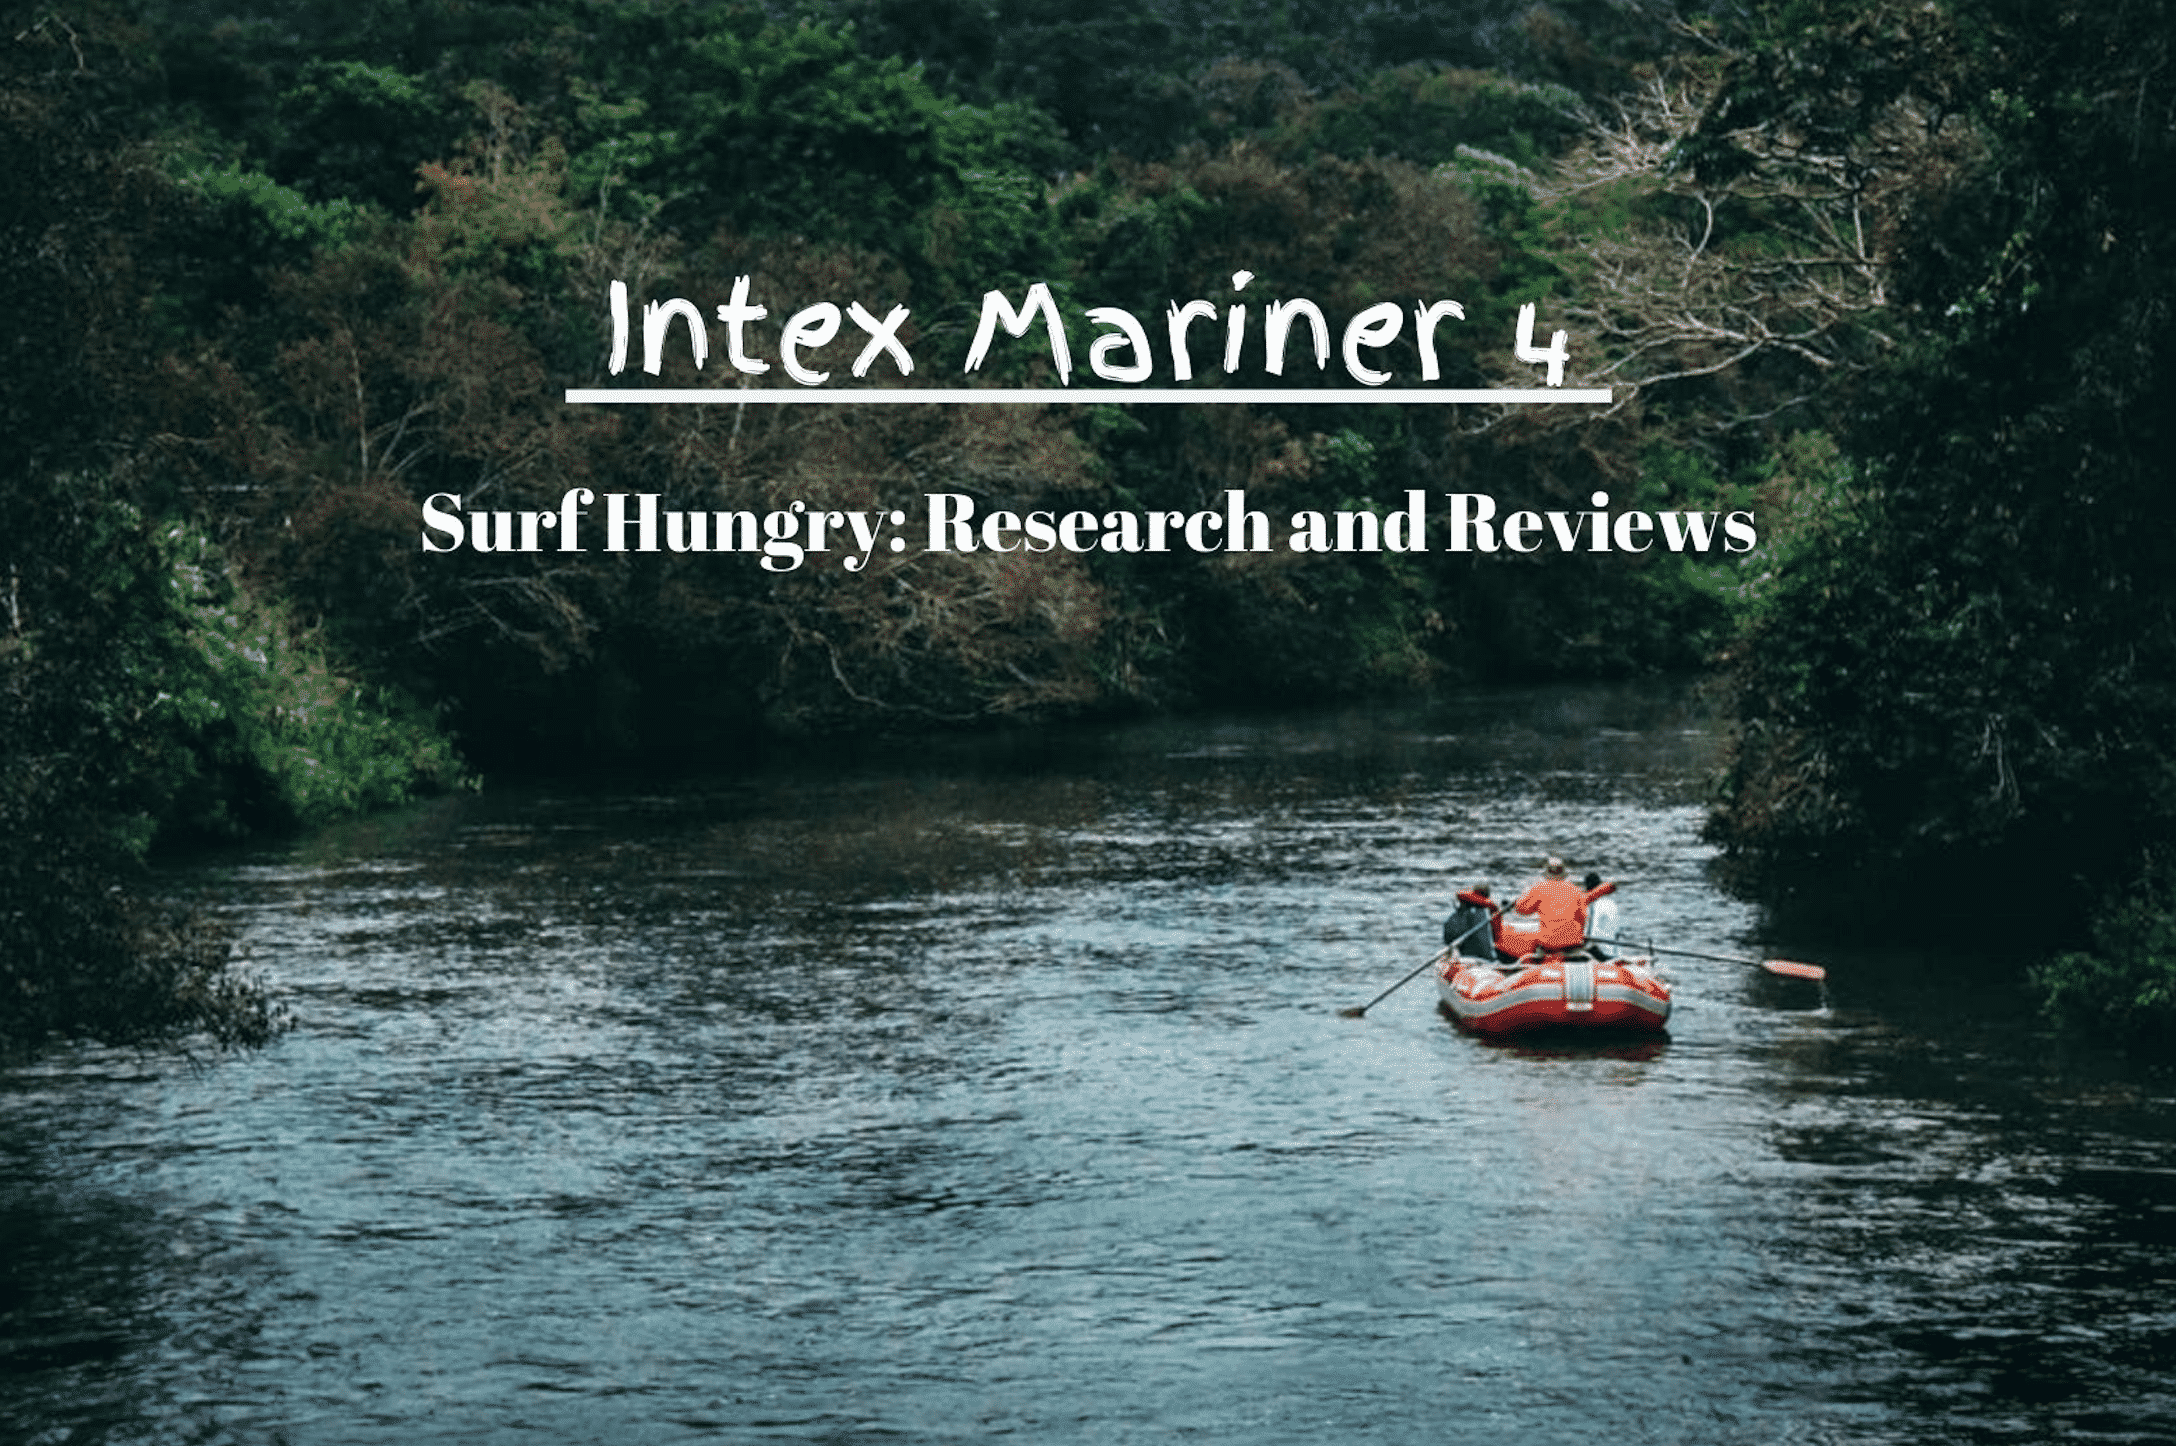 intex mariner 4